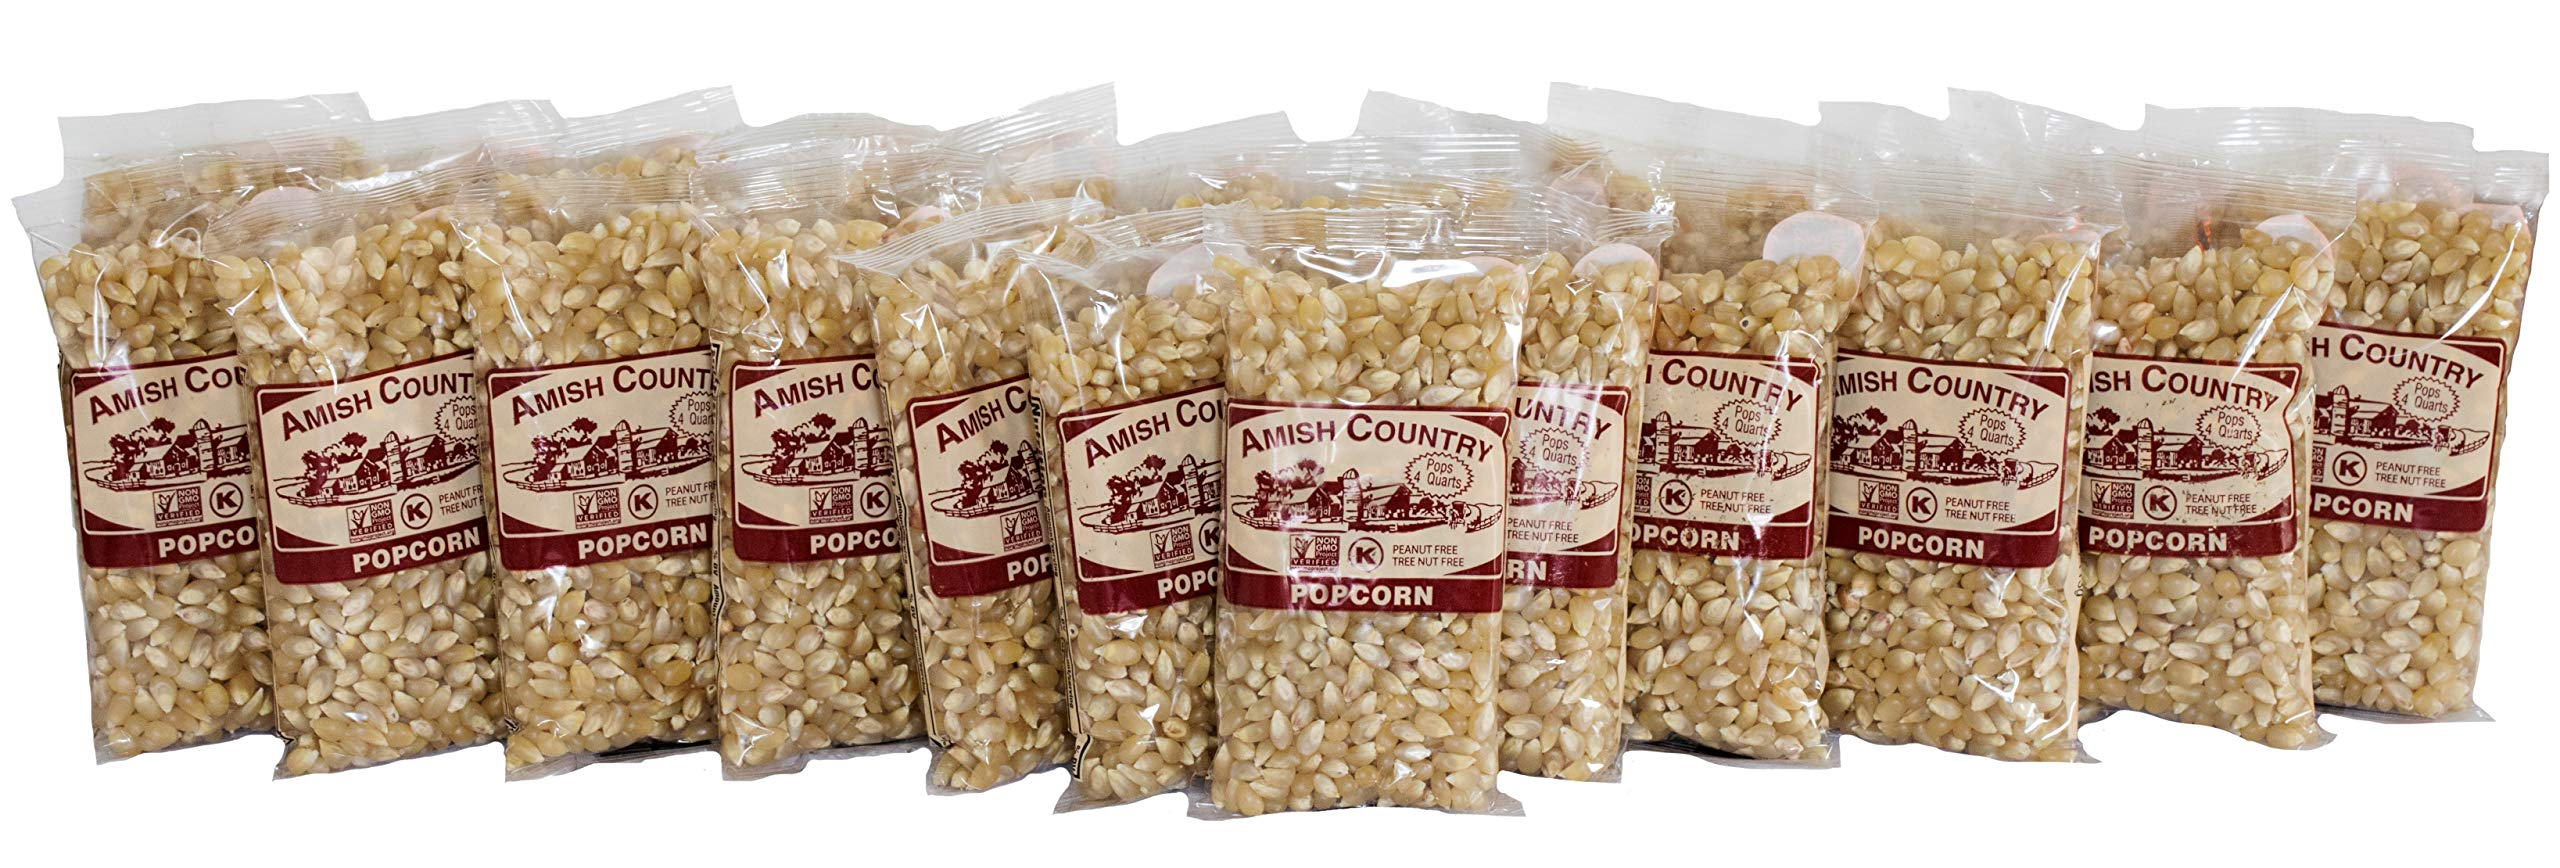 Amish Country Popcorn - Medium White Popcorn (4 Ounce - 24 Pack) Bags - Old Fashioned, Non GMO, and Gluten Free - with Recipe Guide by Amish Country Popcorn (Image #1)